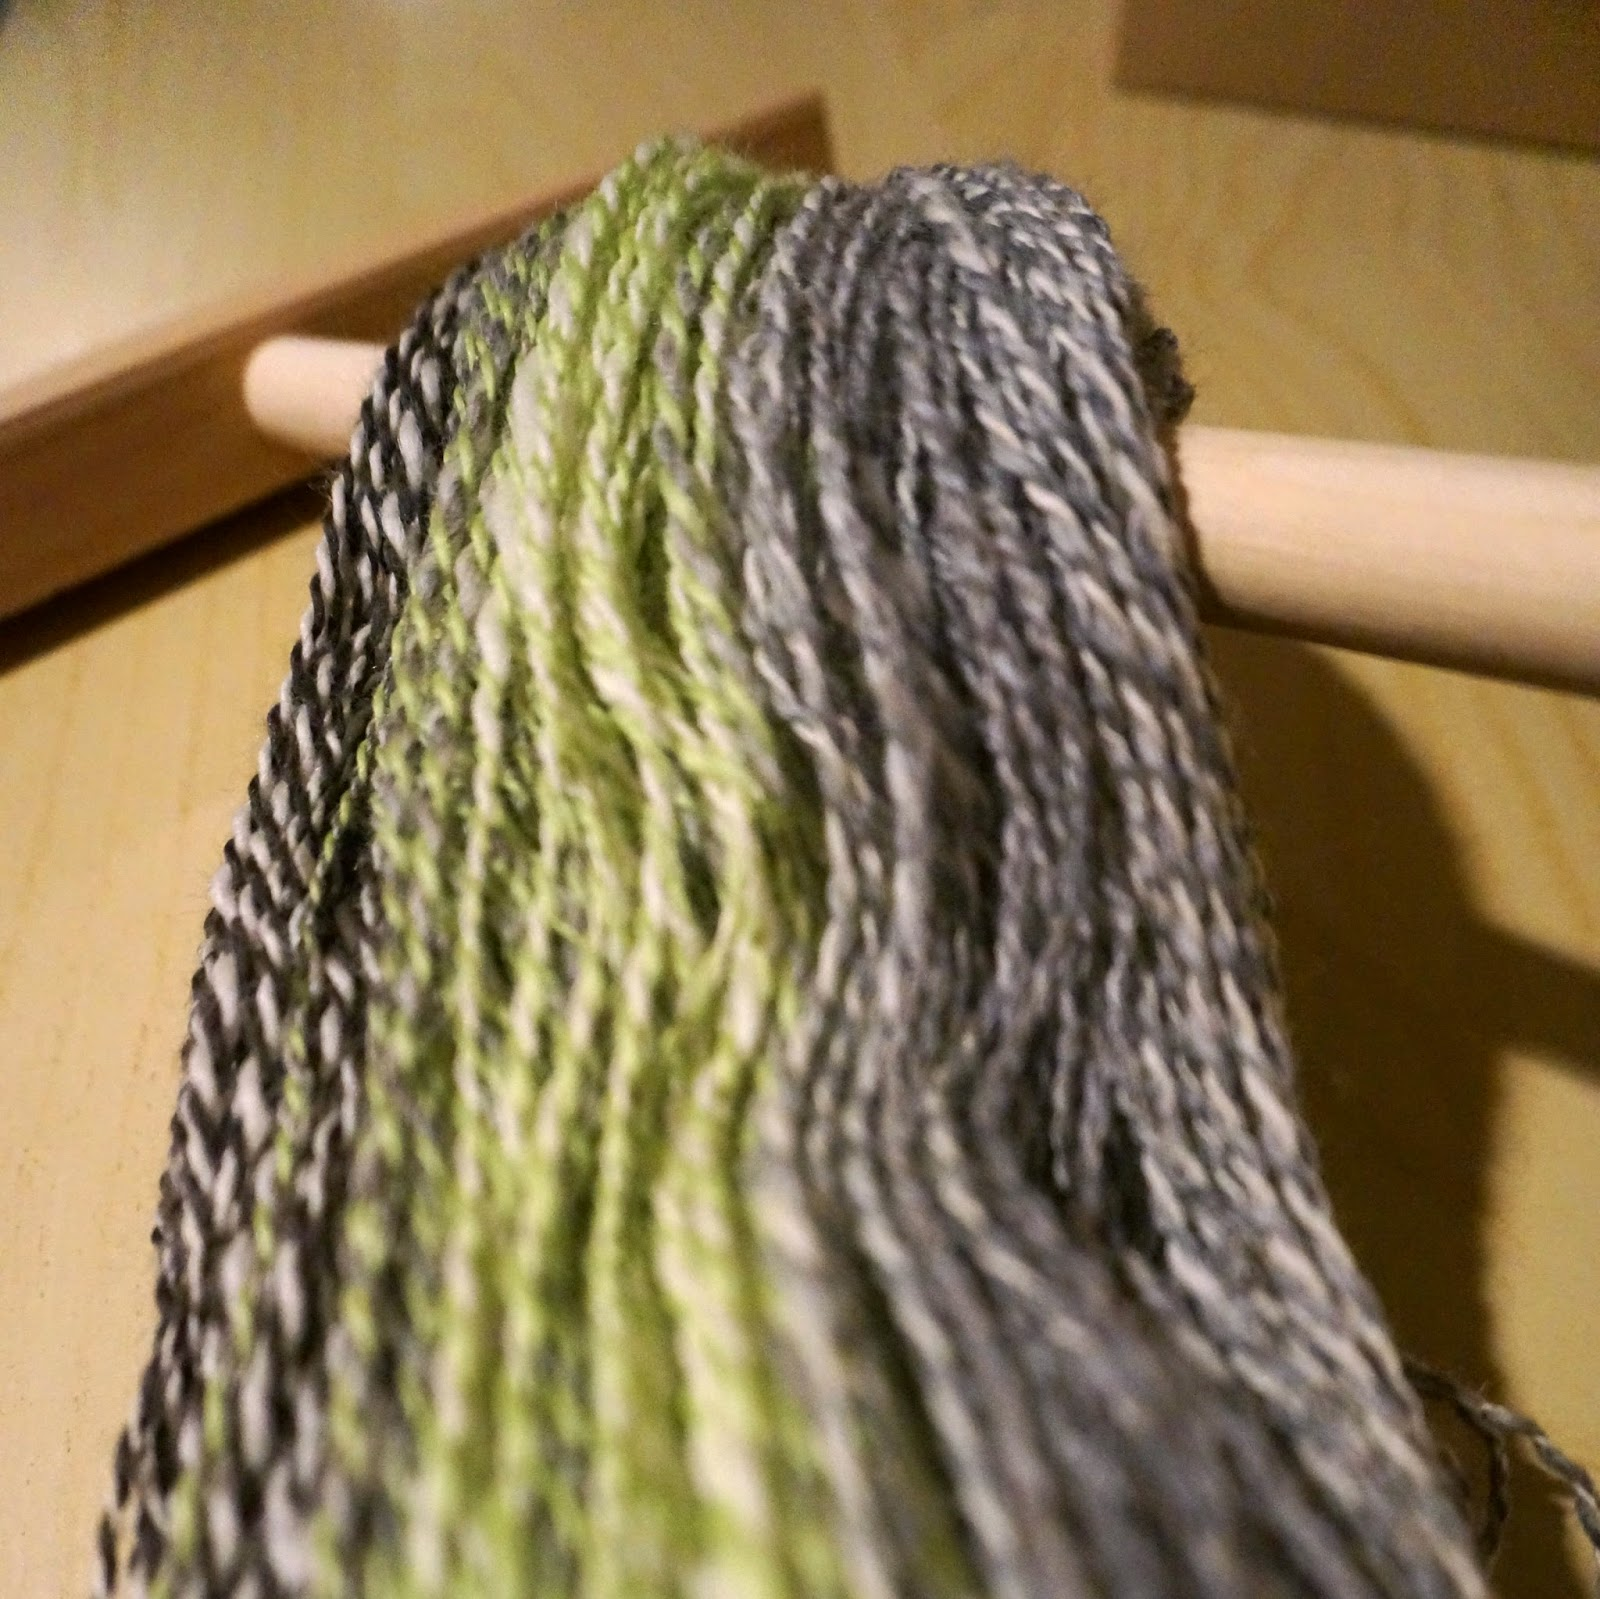 plied yarn